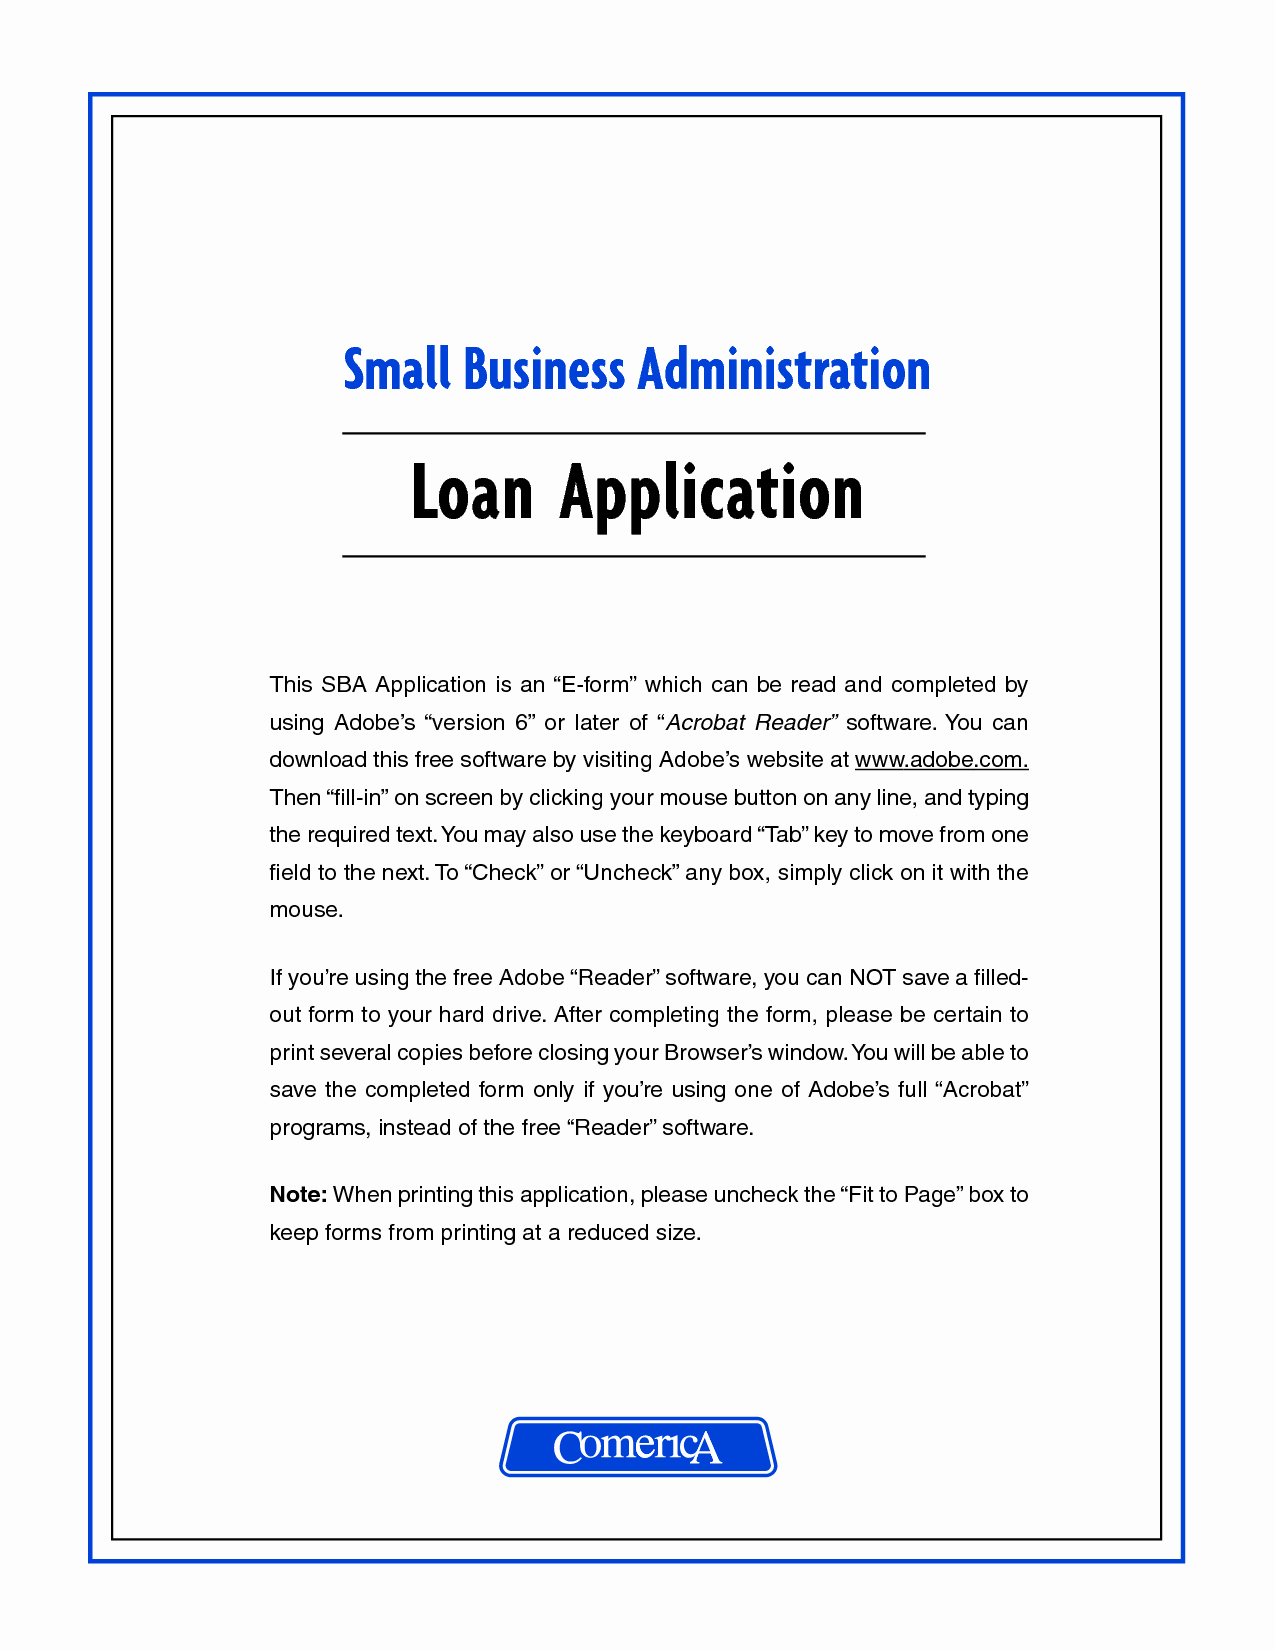 Cover Letter for Business Loan